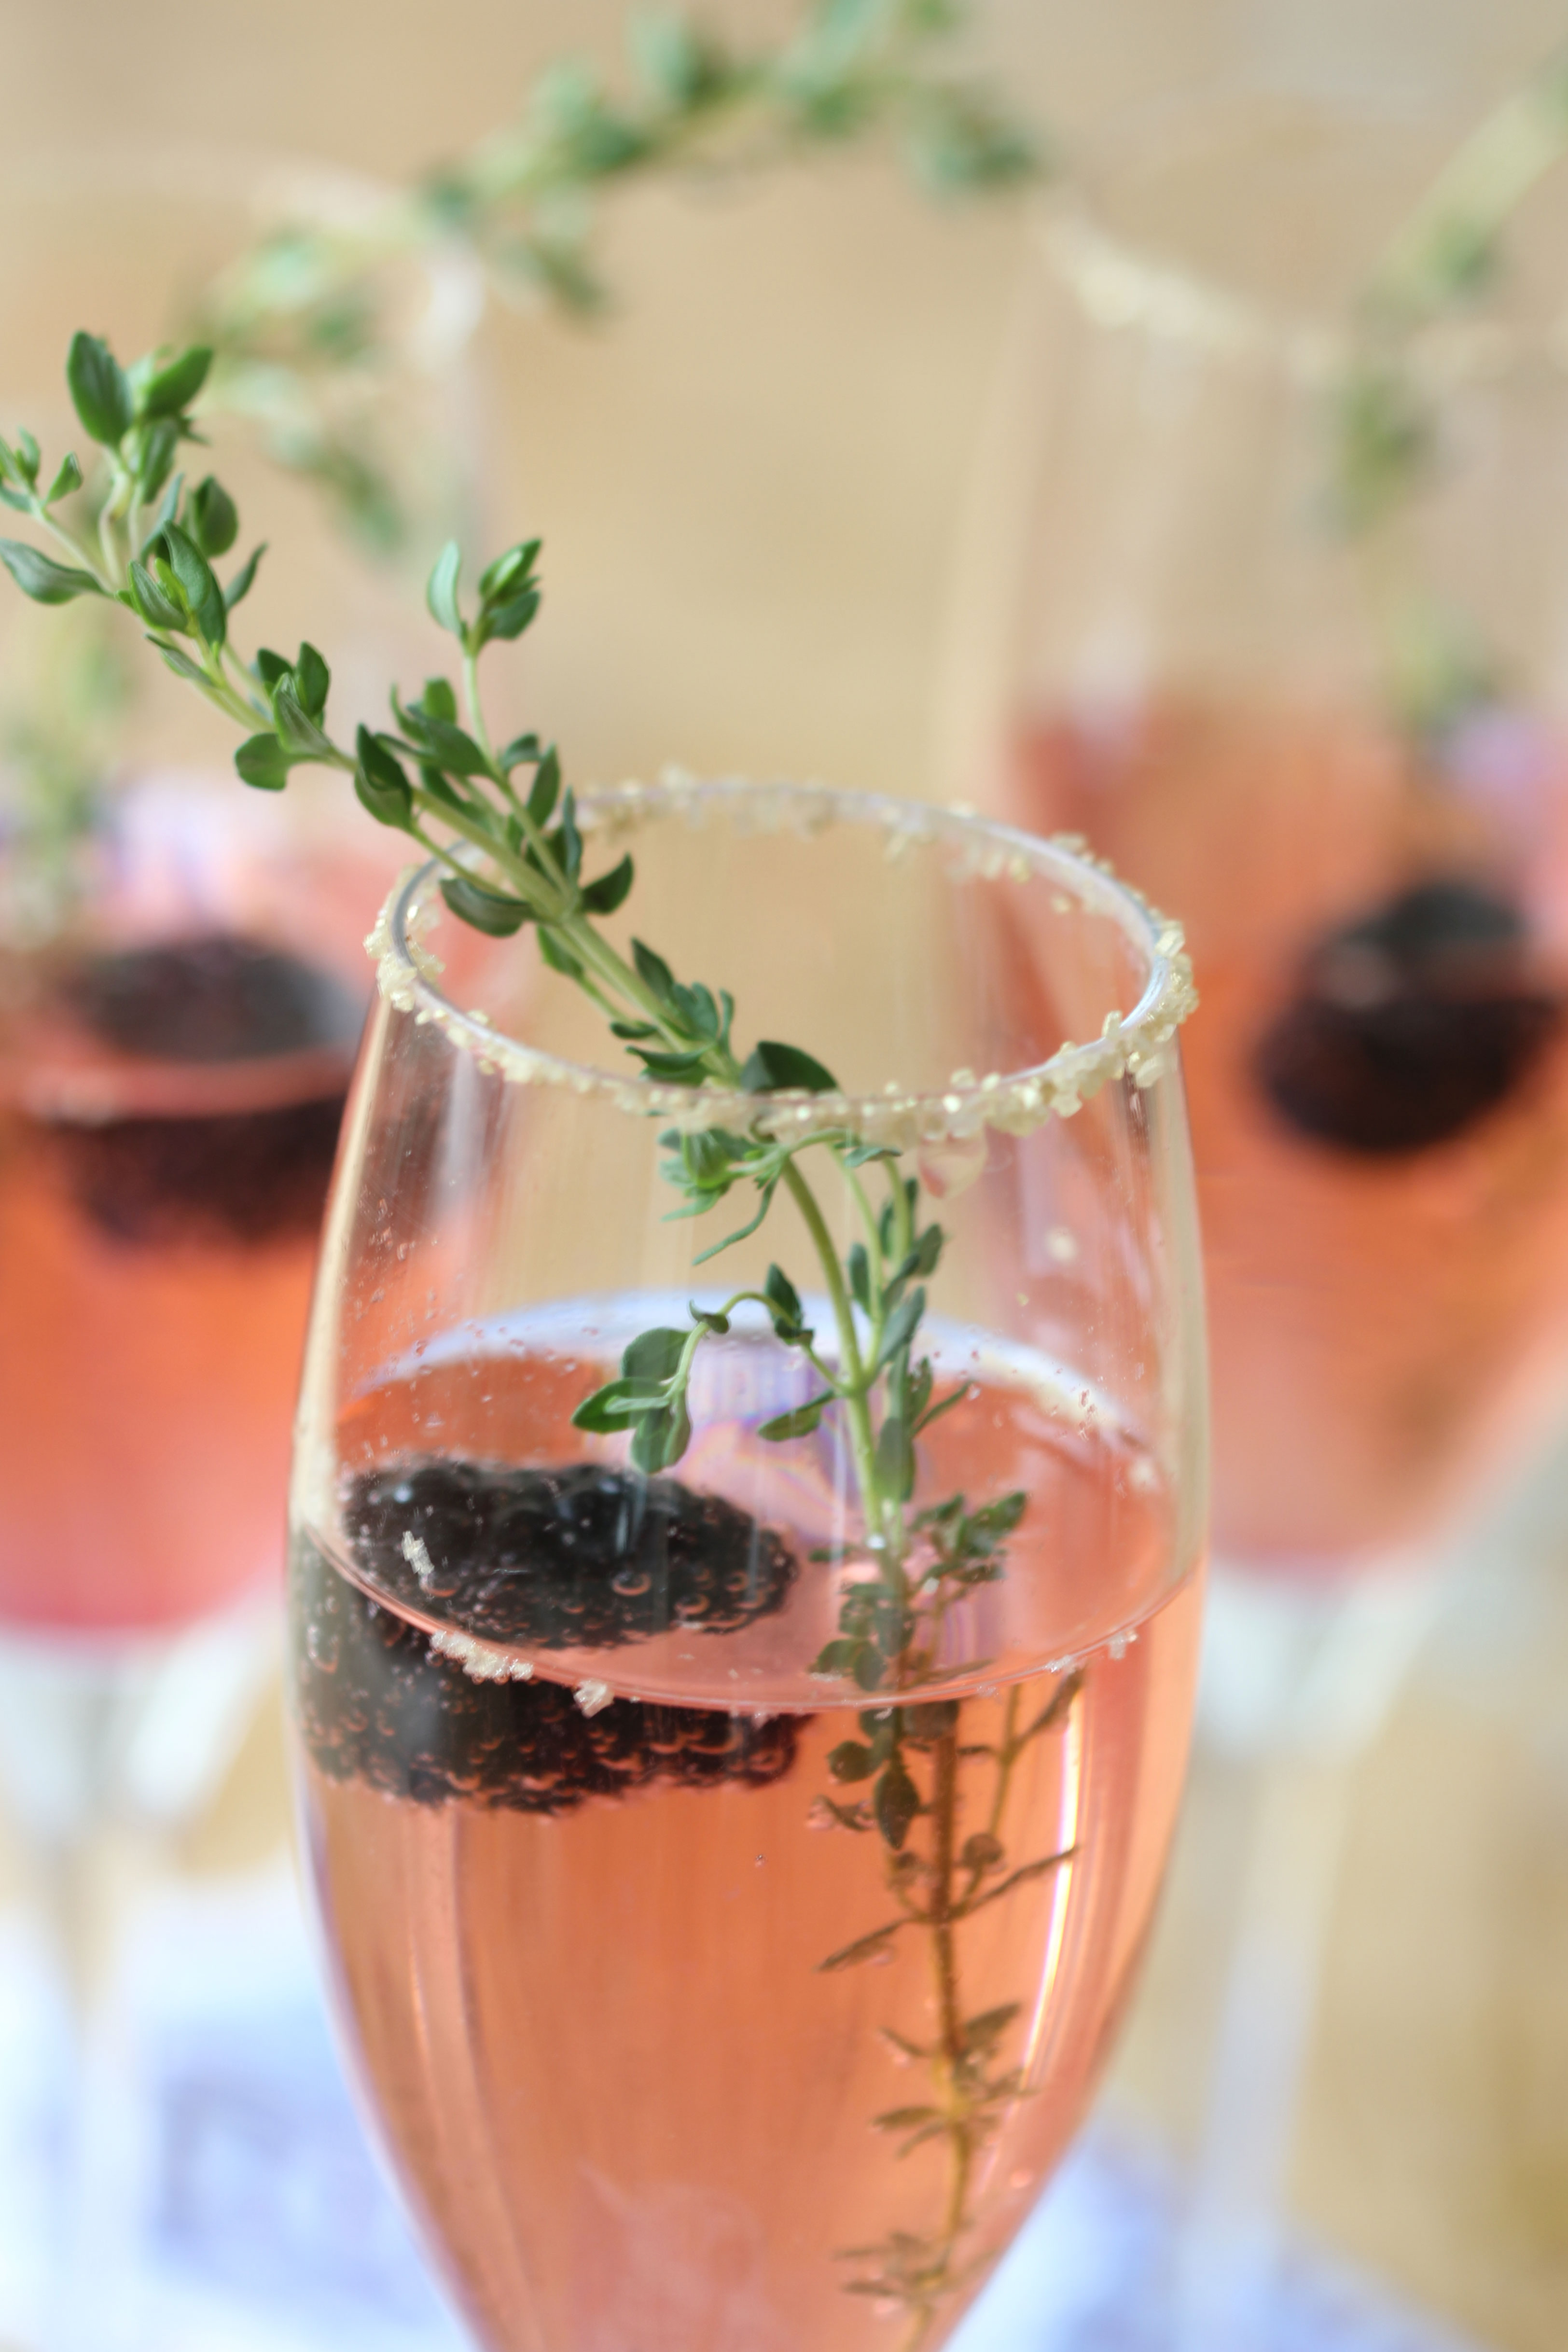 Ridgely Brode makes a Blackberry Thyme Champagne Cocktail for New Years and features the recipe on her blog Ridgely's Radar.